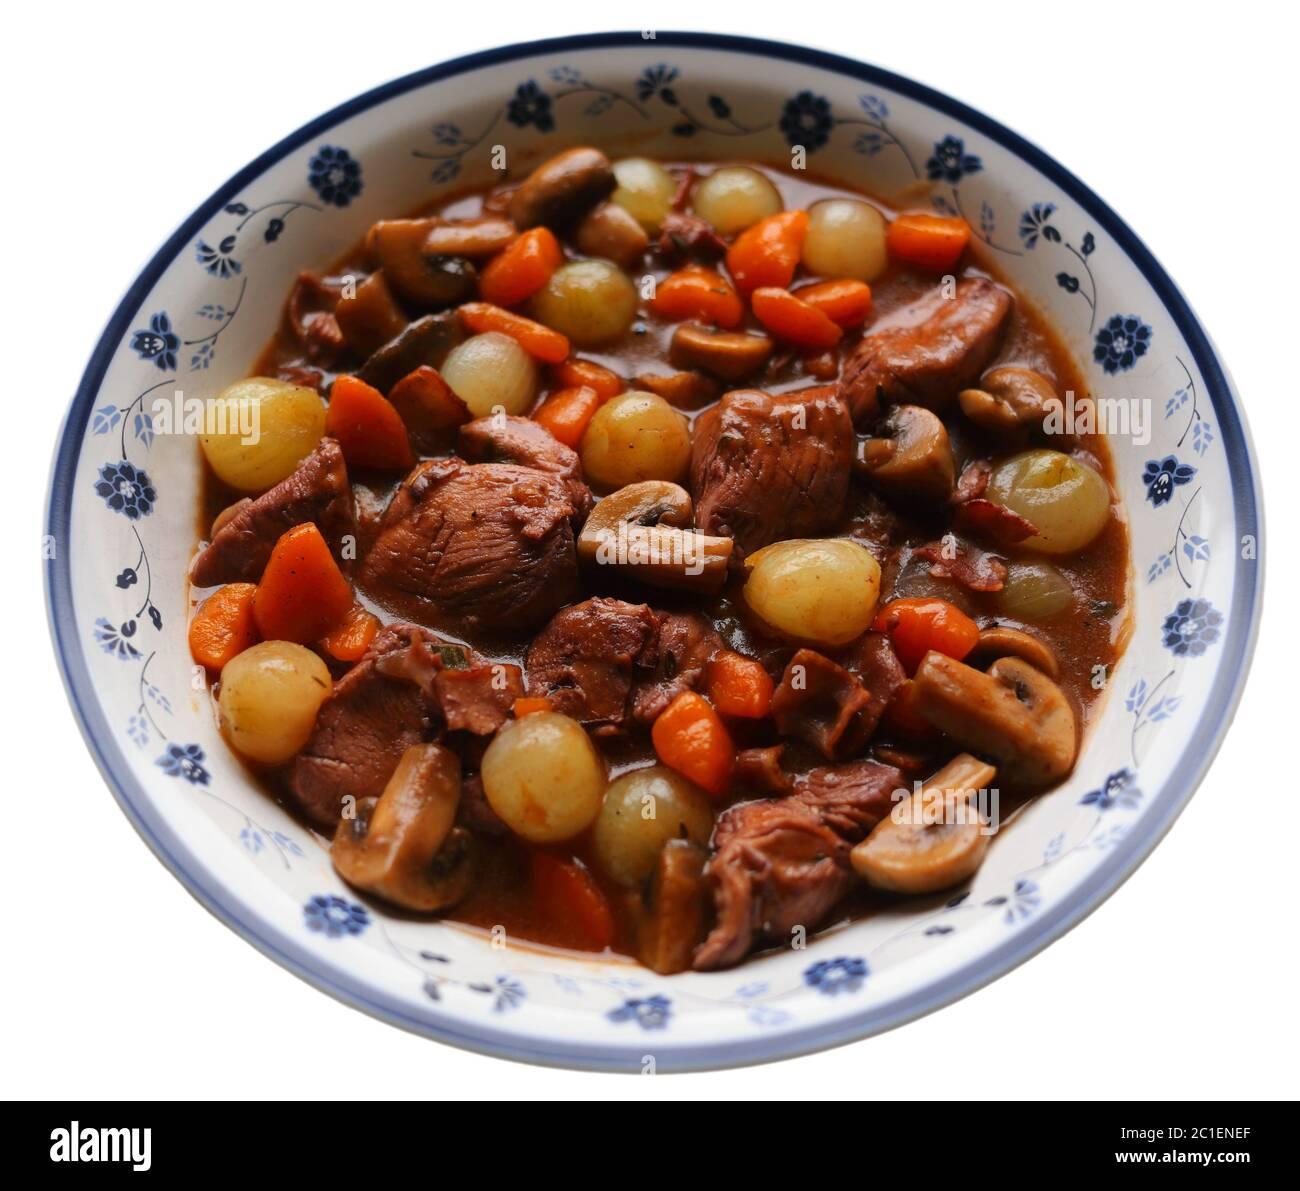 Coq Au Vin Typical French Dish Of Chicken In A Red Burgundy Wine Sauce With Mushrooms Carrots And Pearl Onions Or Shallots Stock Photo Alamy